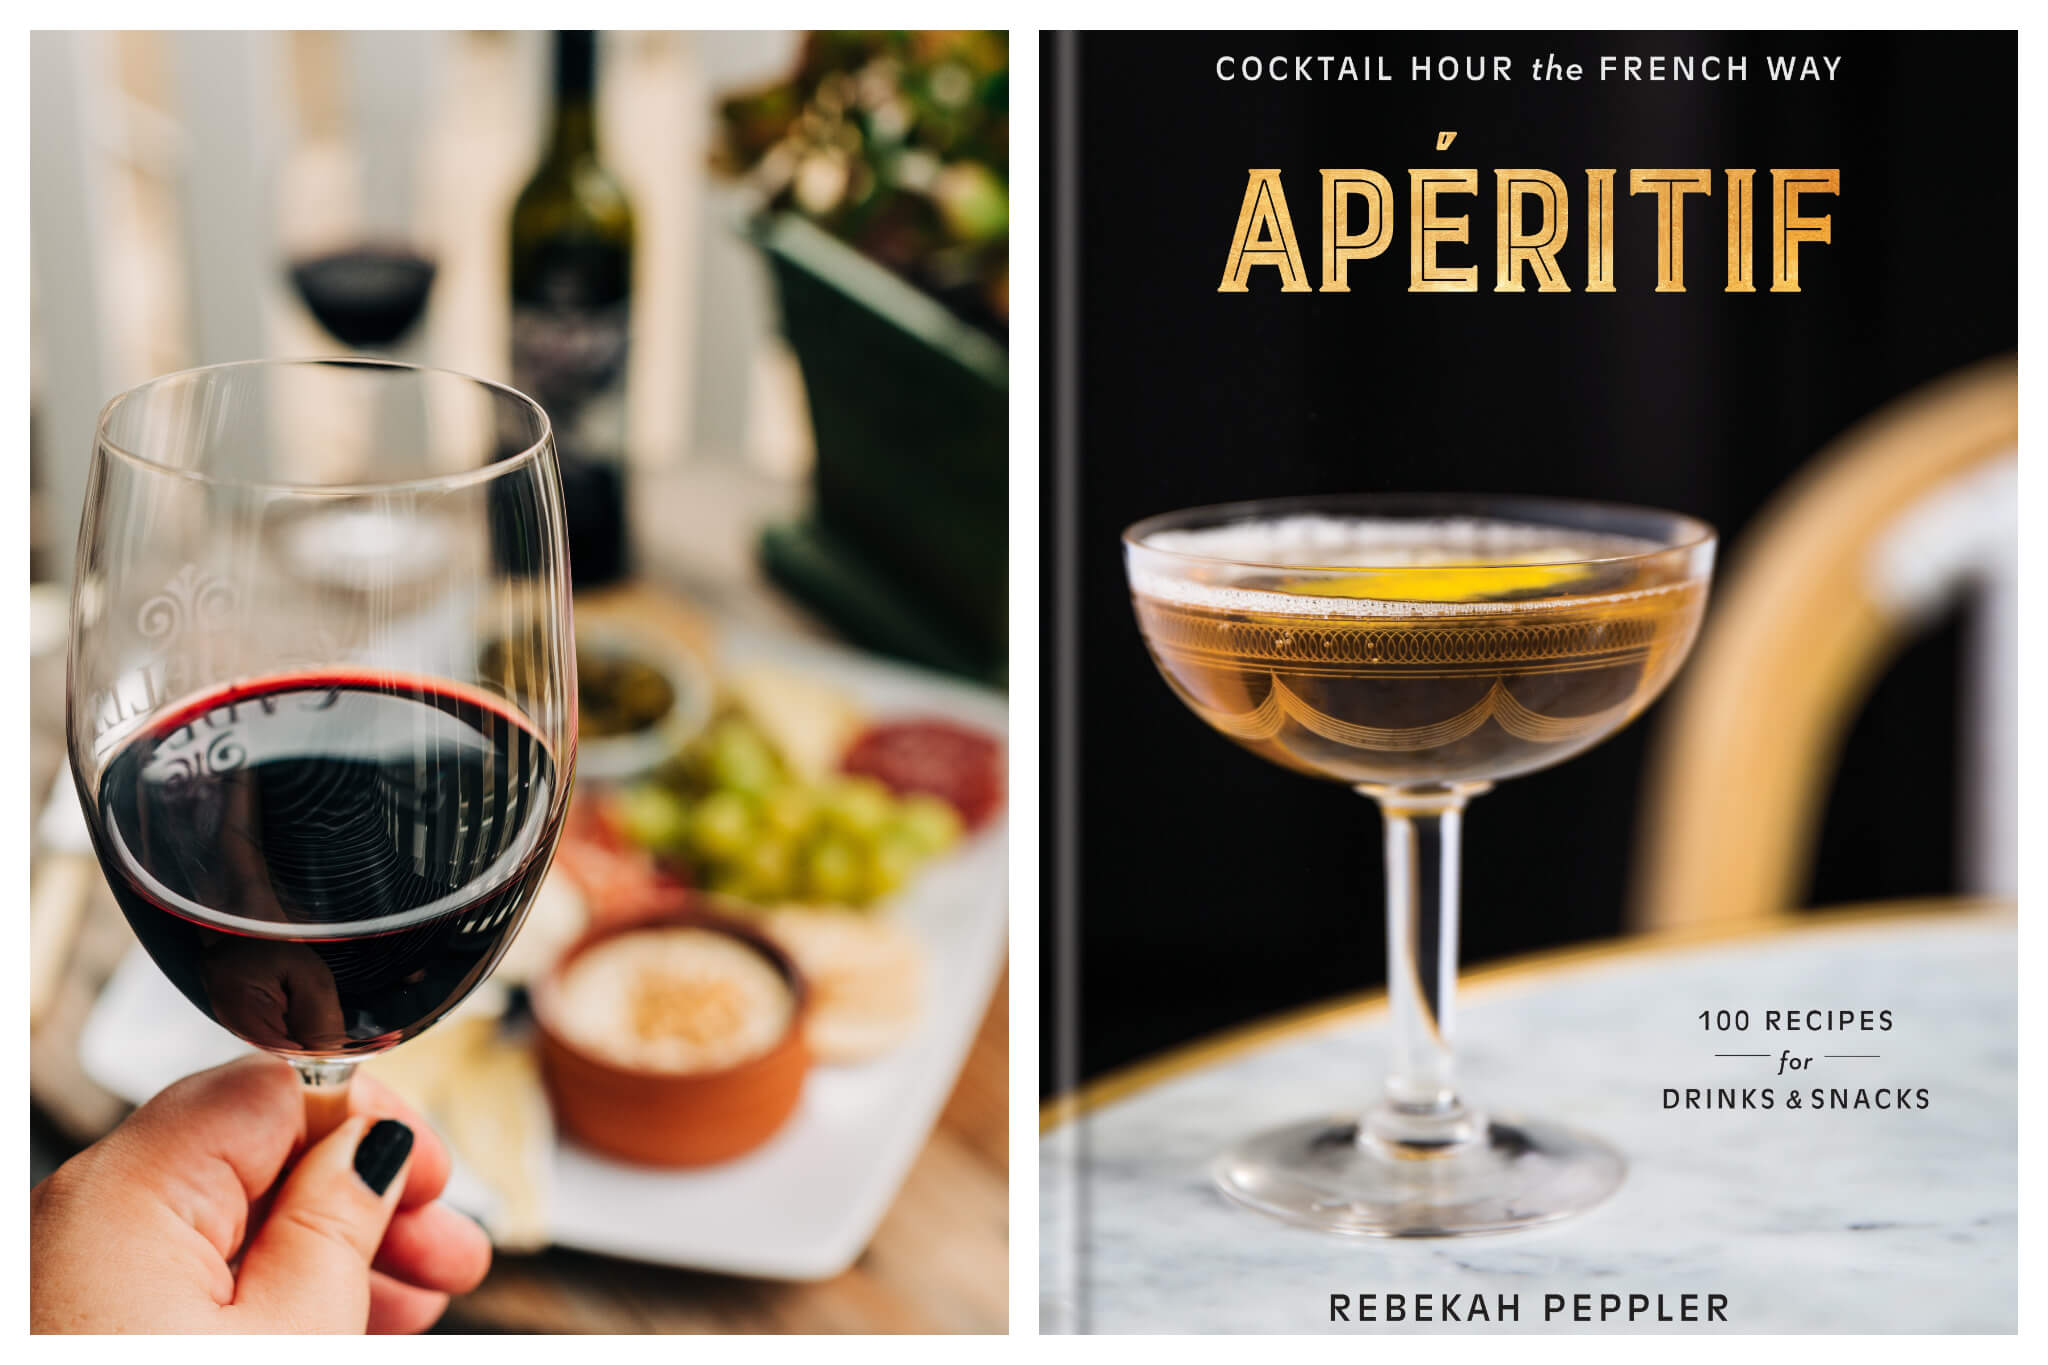 Left, a woman's hand holding up a glass of red wine to go with a ham and cheese platter at home during the Coronavirus. Right, the cover of Rebekah Peppler's book 'Apéritif' for making cocktails at home during self-isolation.